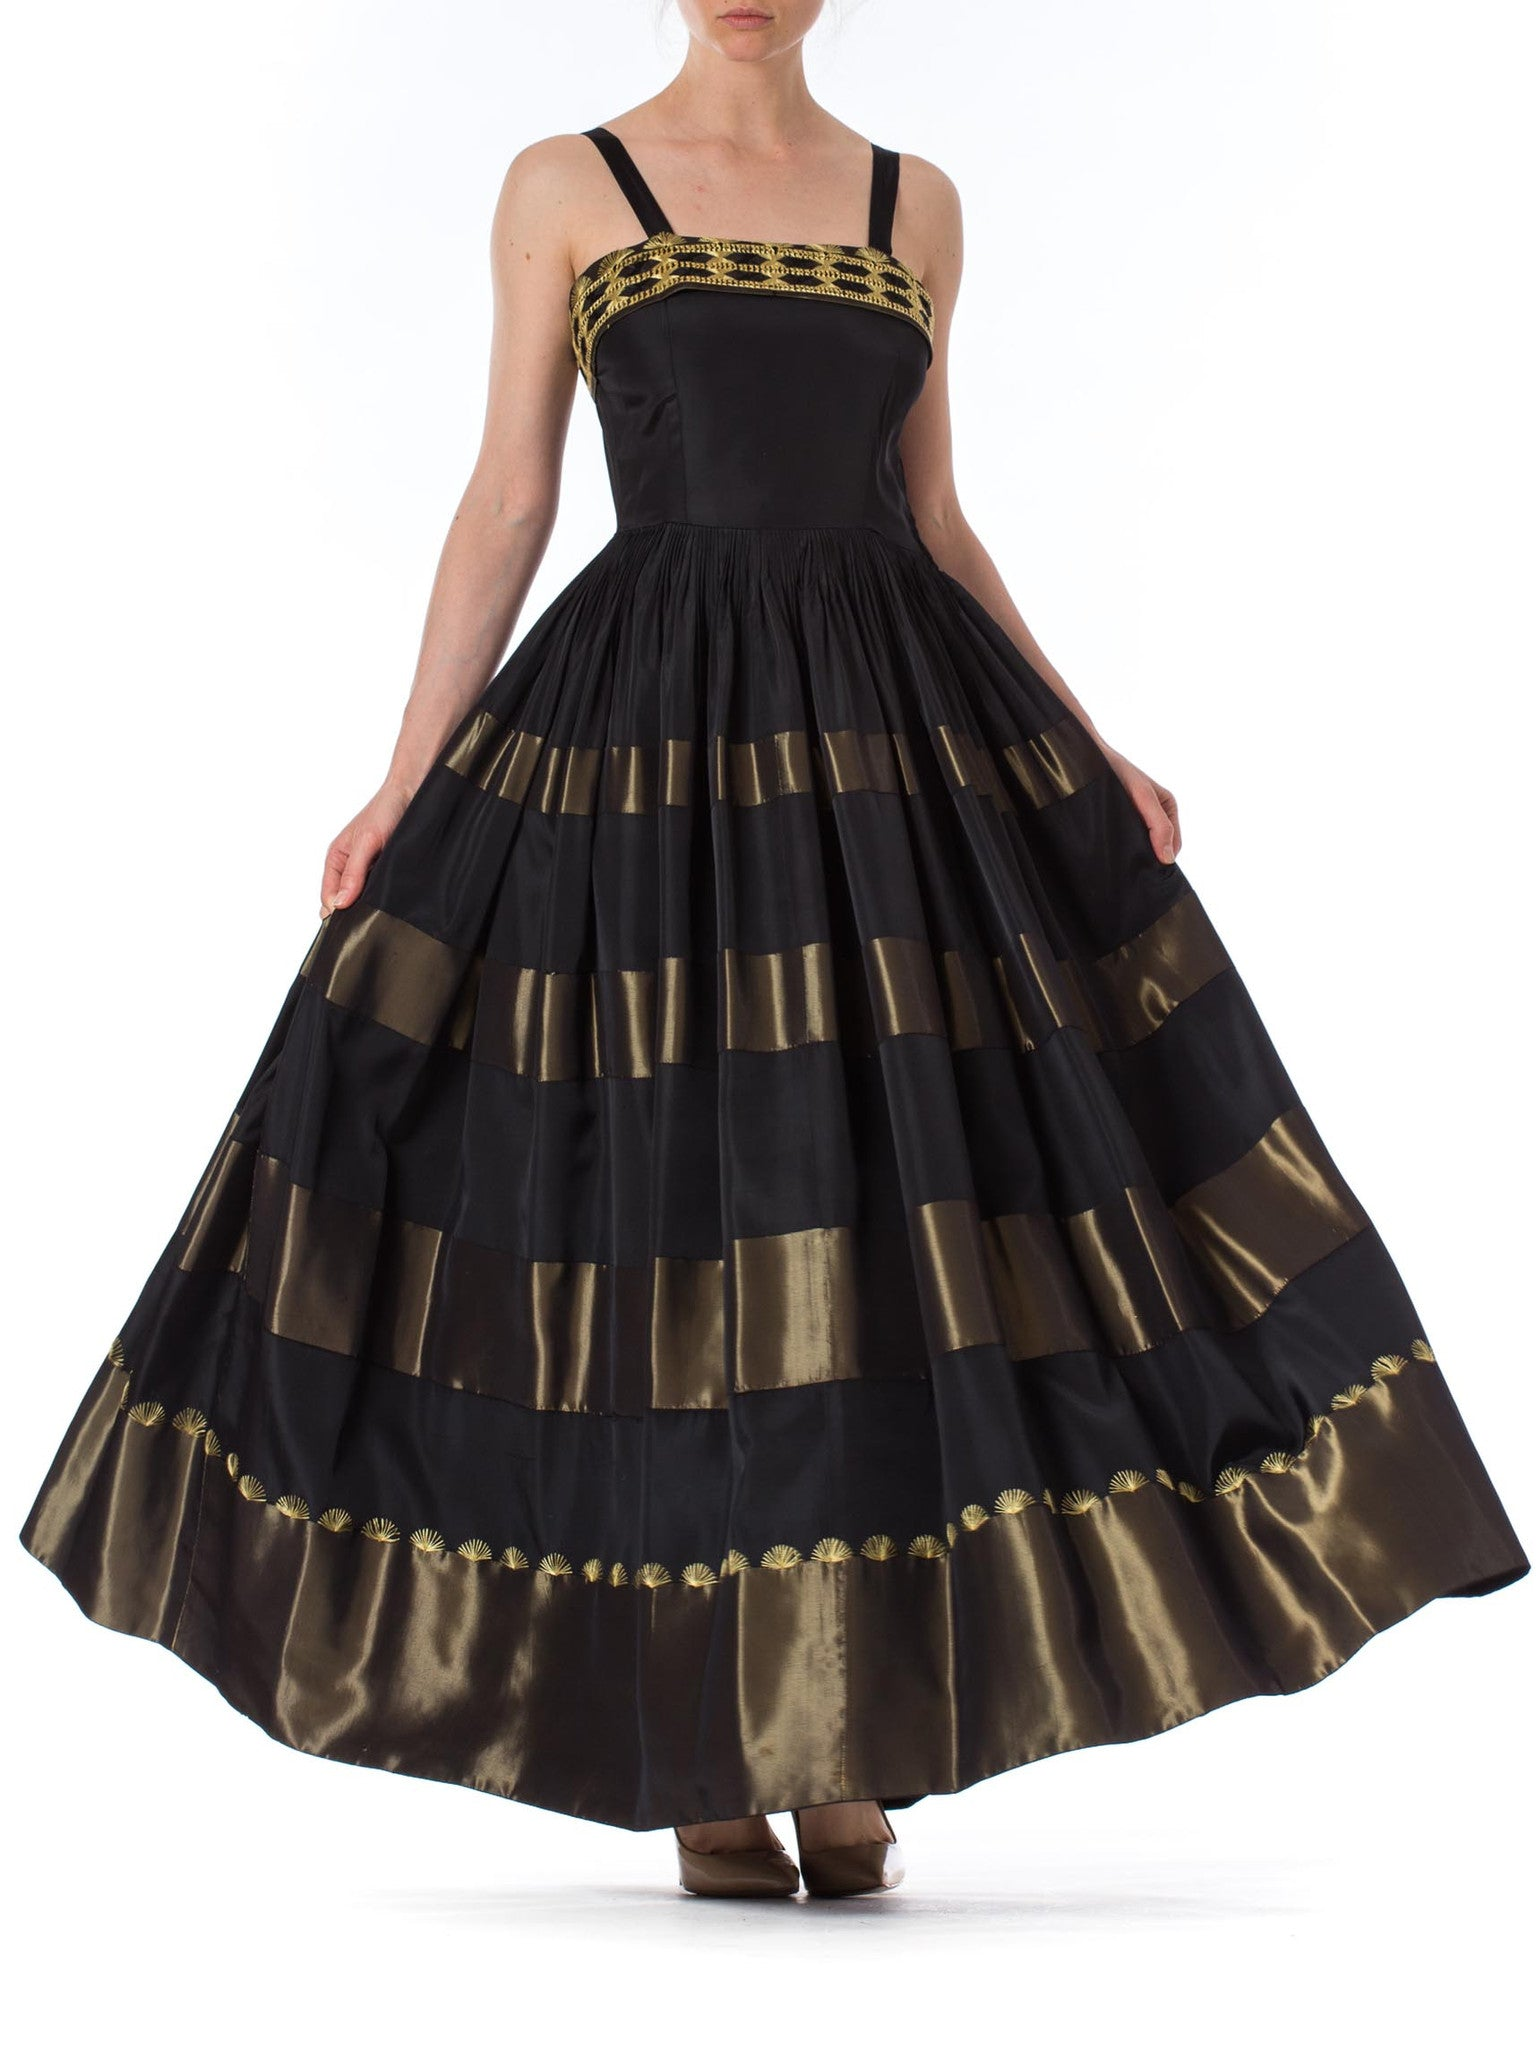 1940S Black & Gold Rayon Taffeta Ball Gown With Hand Embroidered Hem Bodice